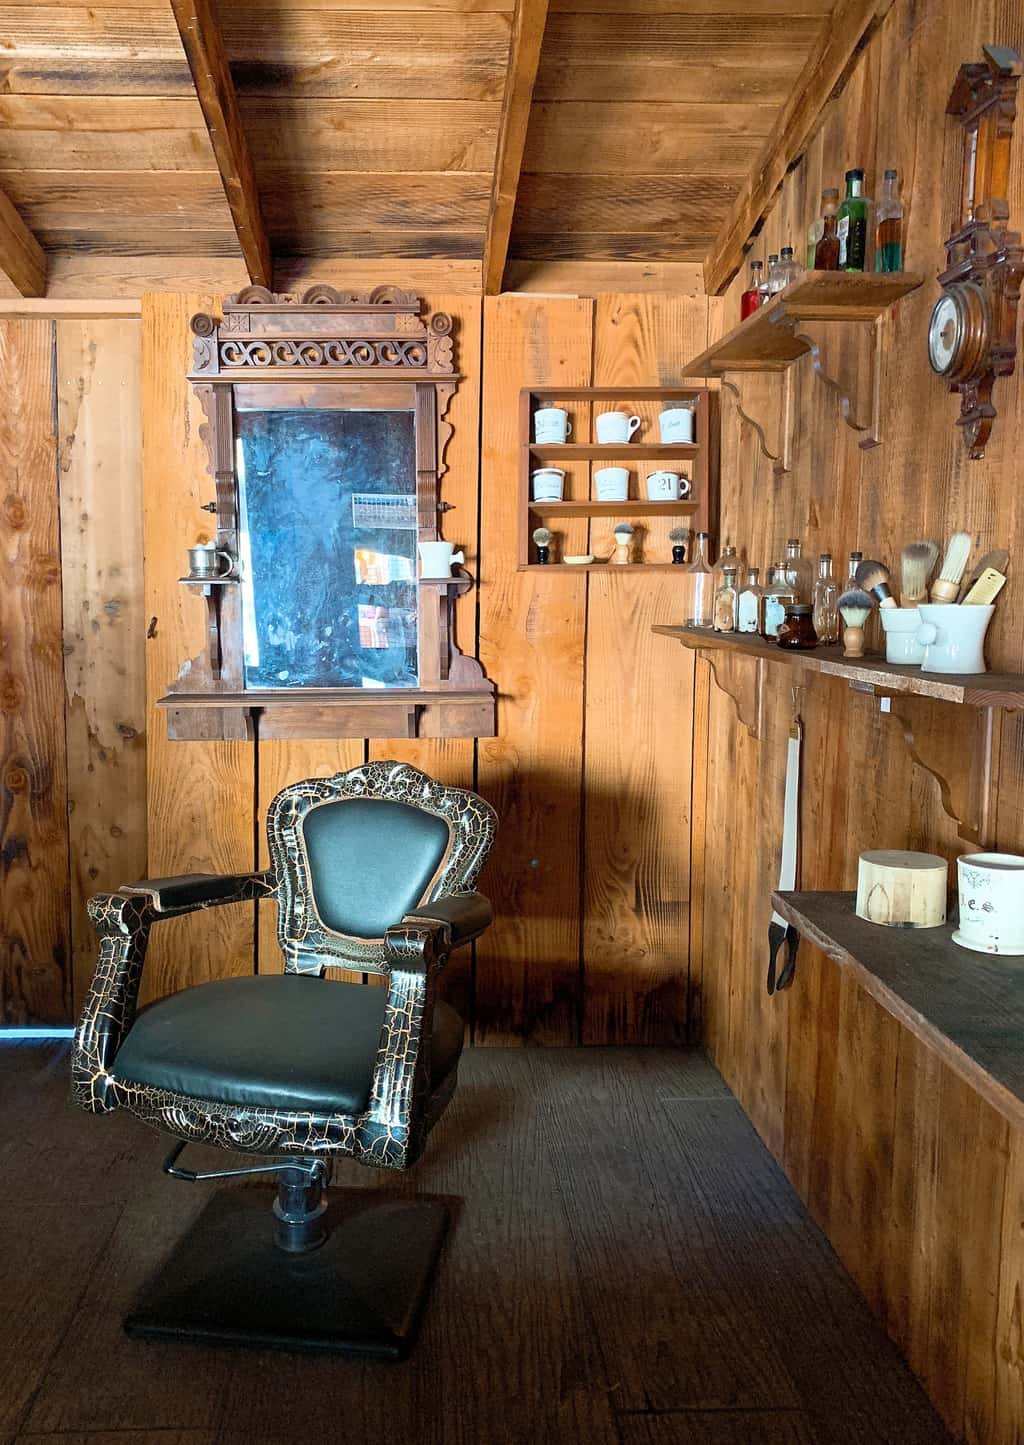 Barber Shop at Knott's Berry Farm